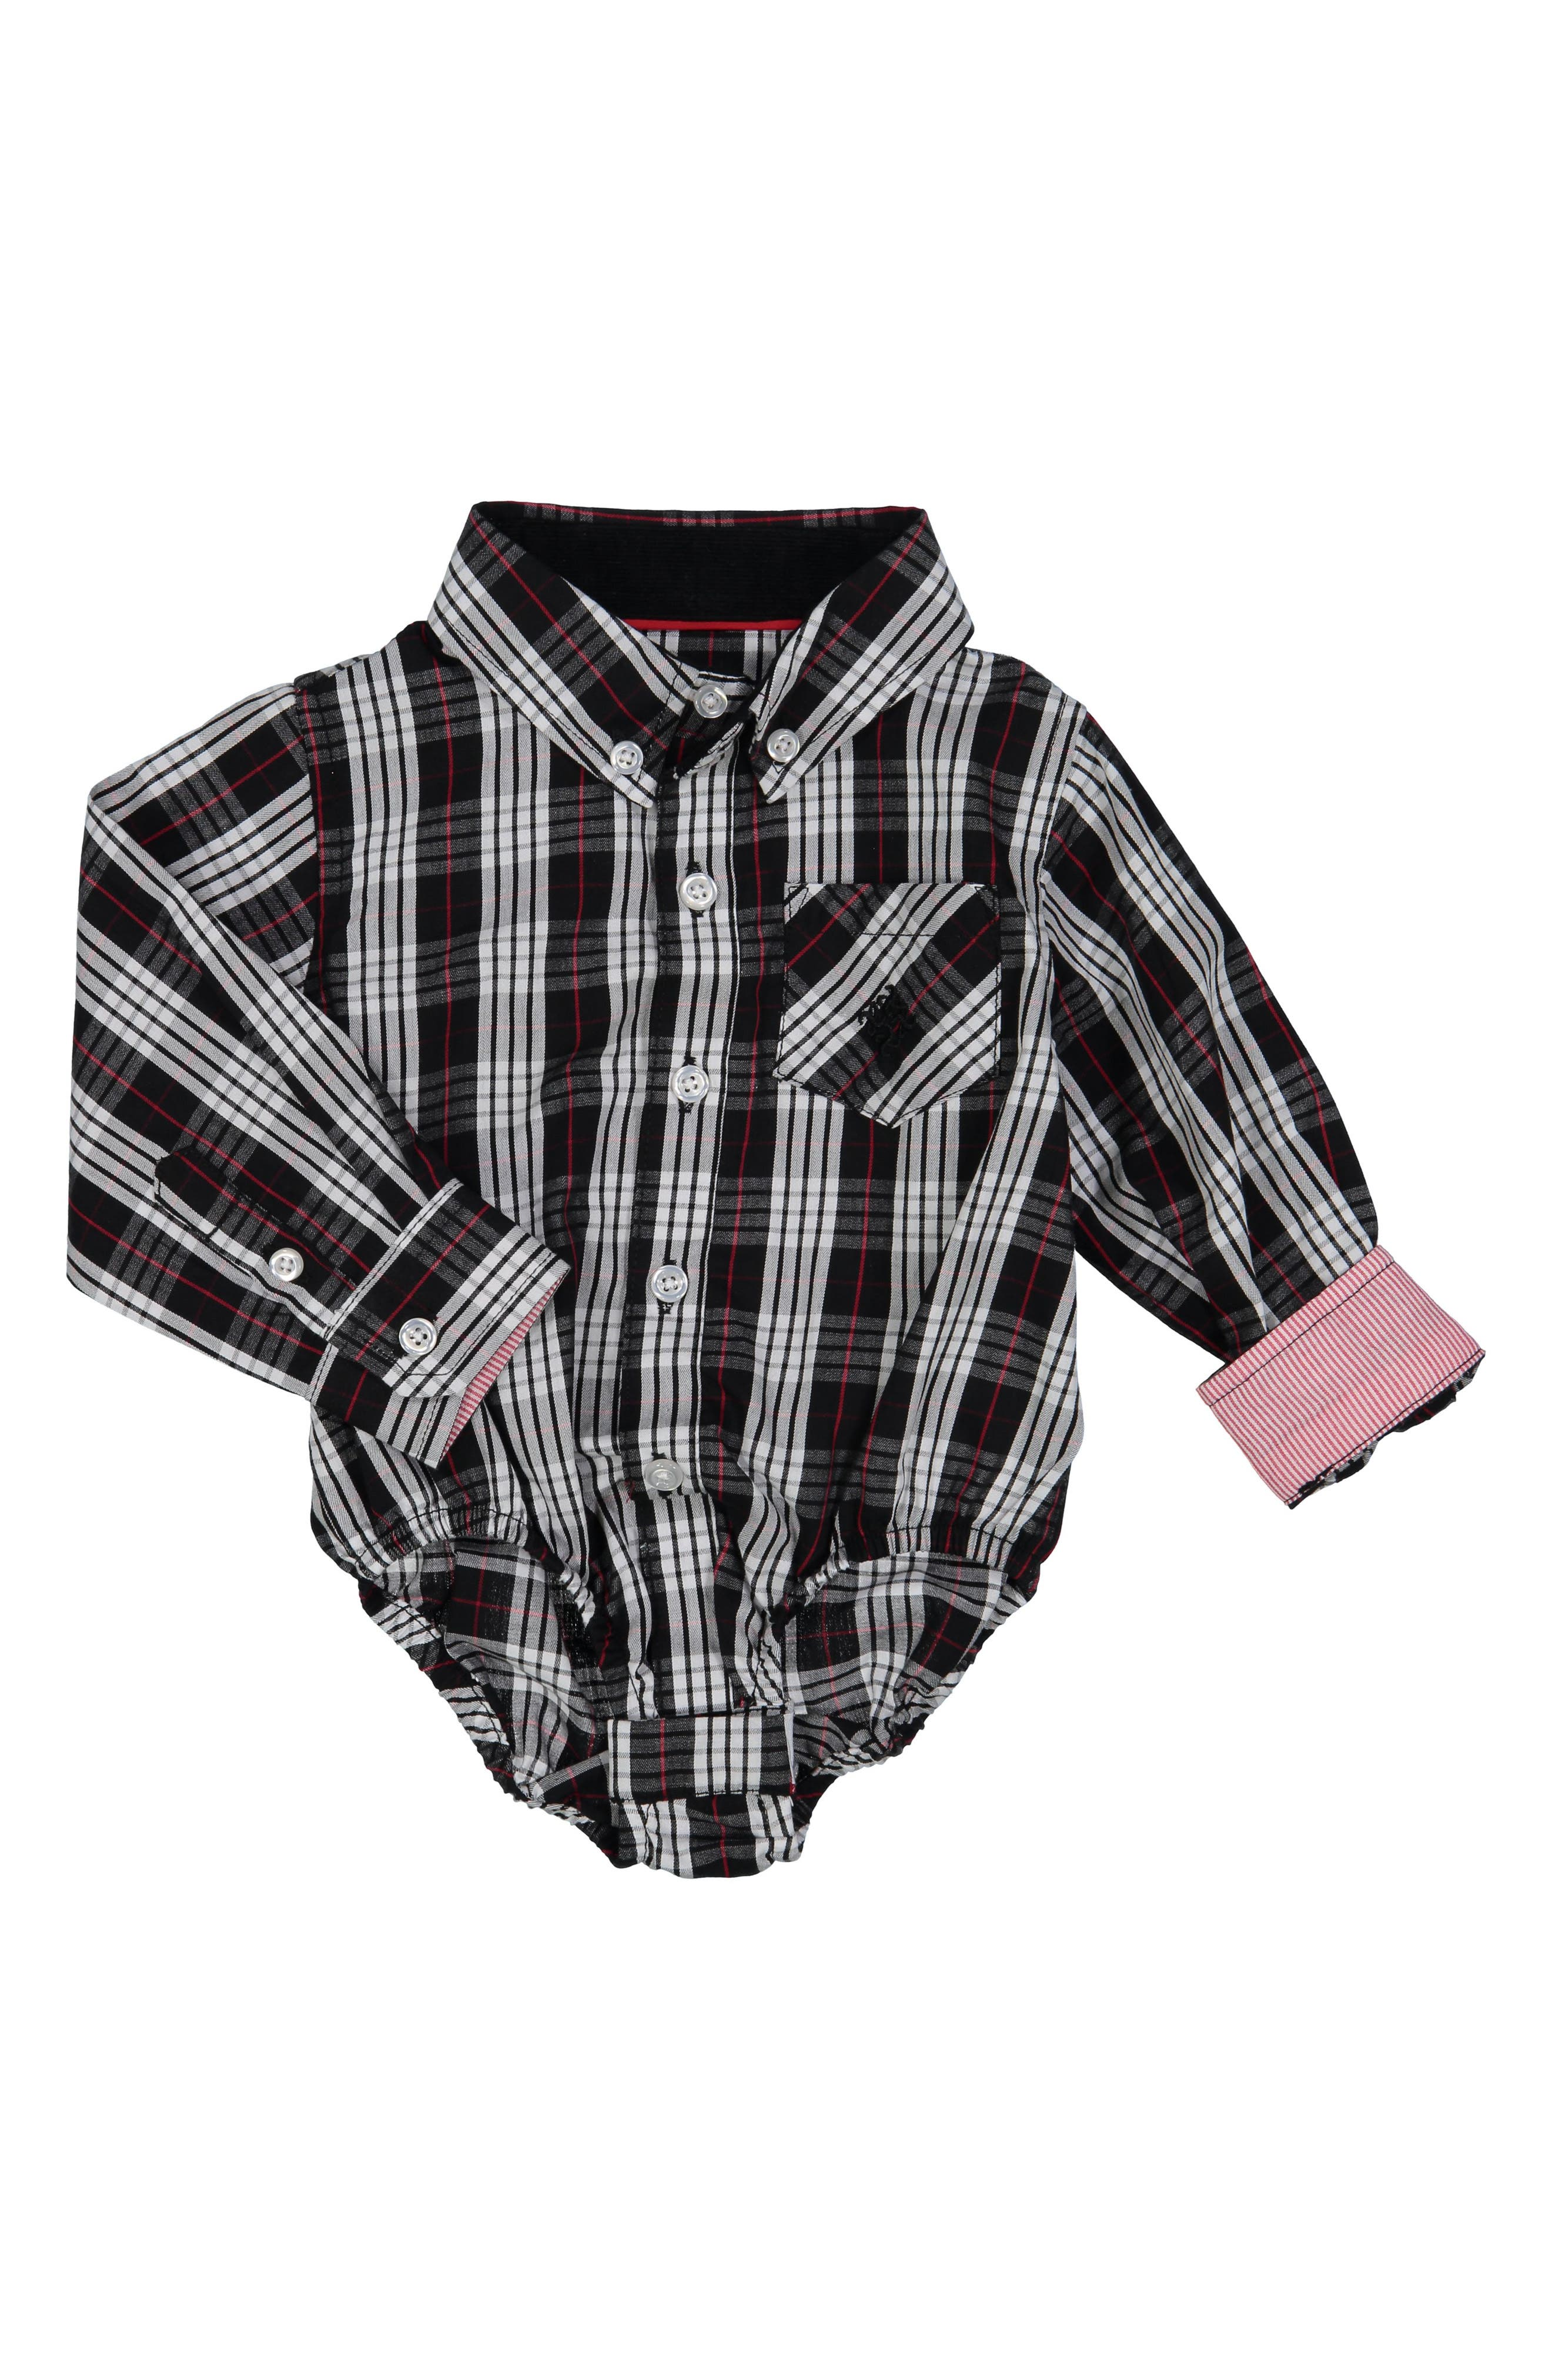 Main Image - Andy & Evan Shirtzie Holiday Check Bodysuit (Baby Boys)